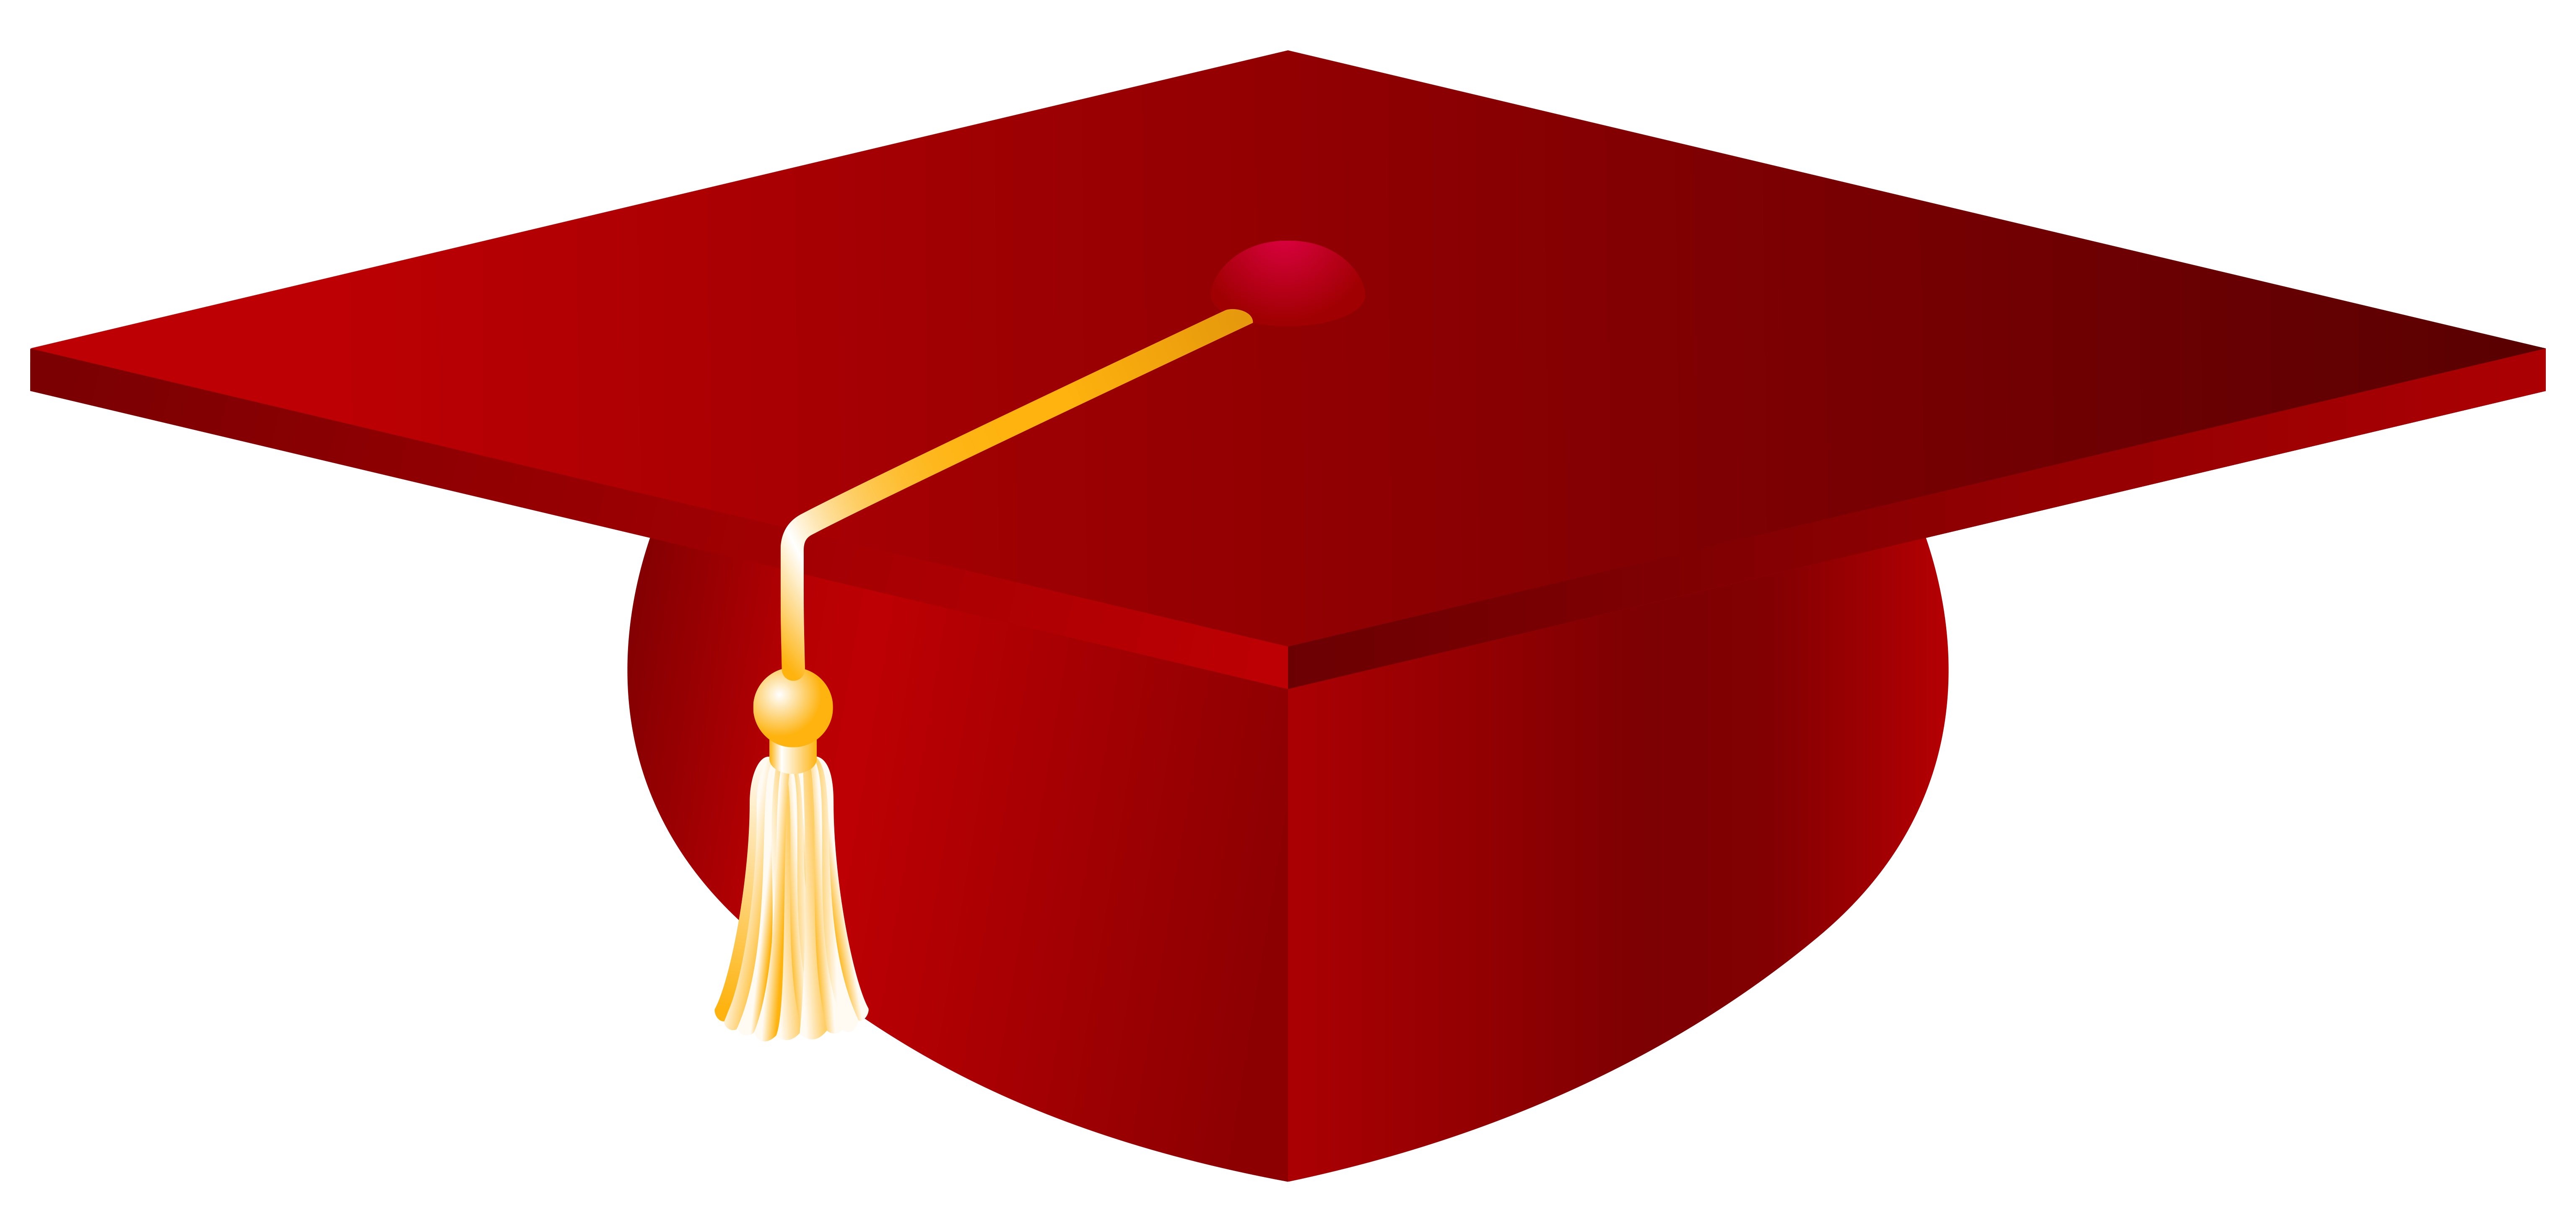 Graduation clipart red transparent library Red-Graduation-Cap-PNG-Vector-Clipart-Image | Gallery Yopriceville ... transparent library